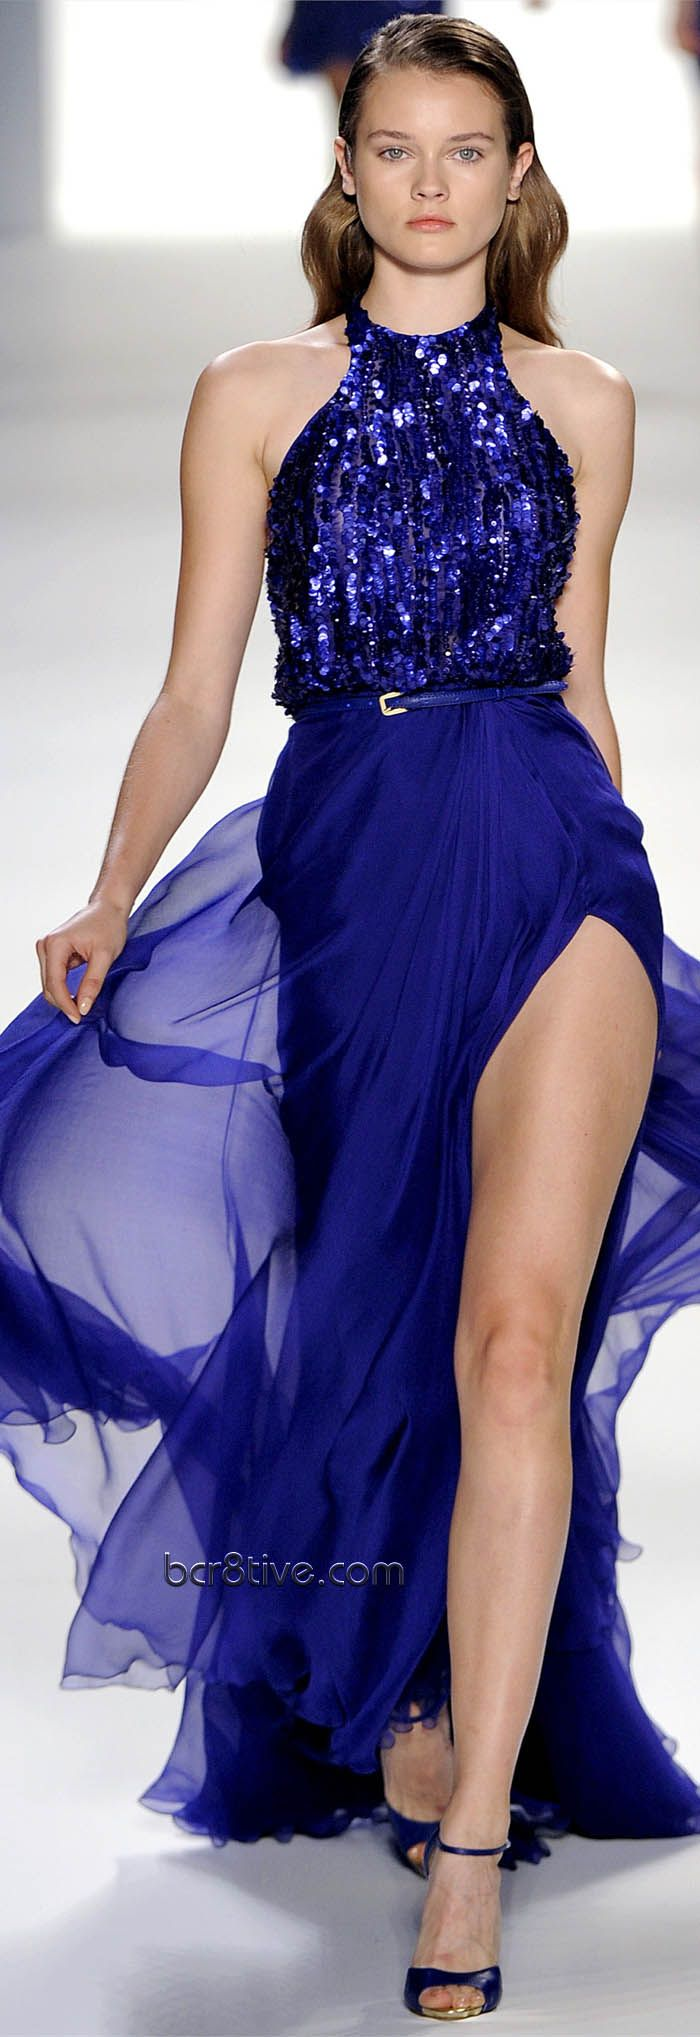 Elie Saab Spring Summer 2012 Ready to Wear - ideas - halter sequin top, belt sinches at waist, satin bottom, thigh high, bright color